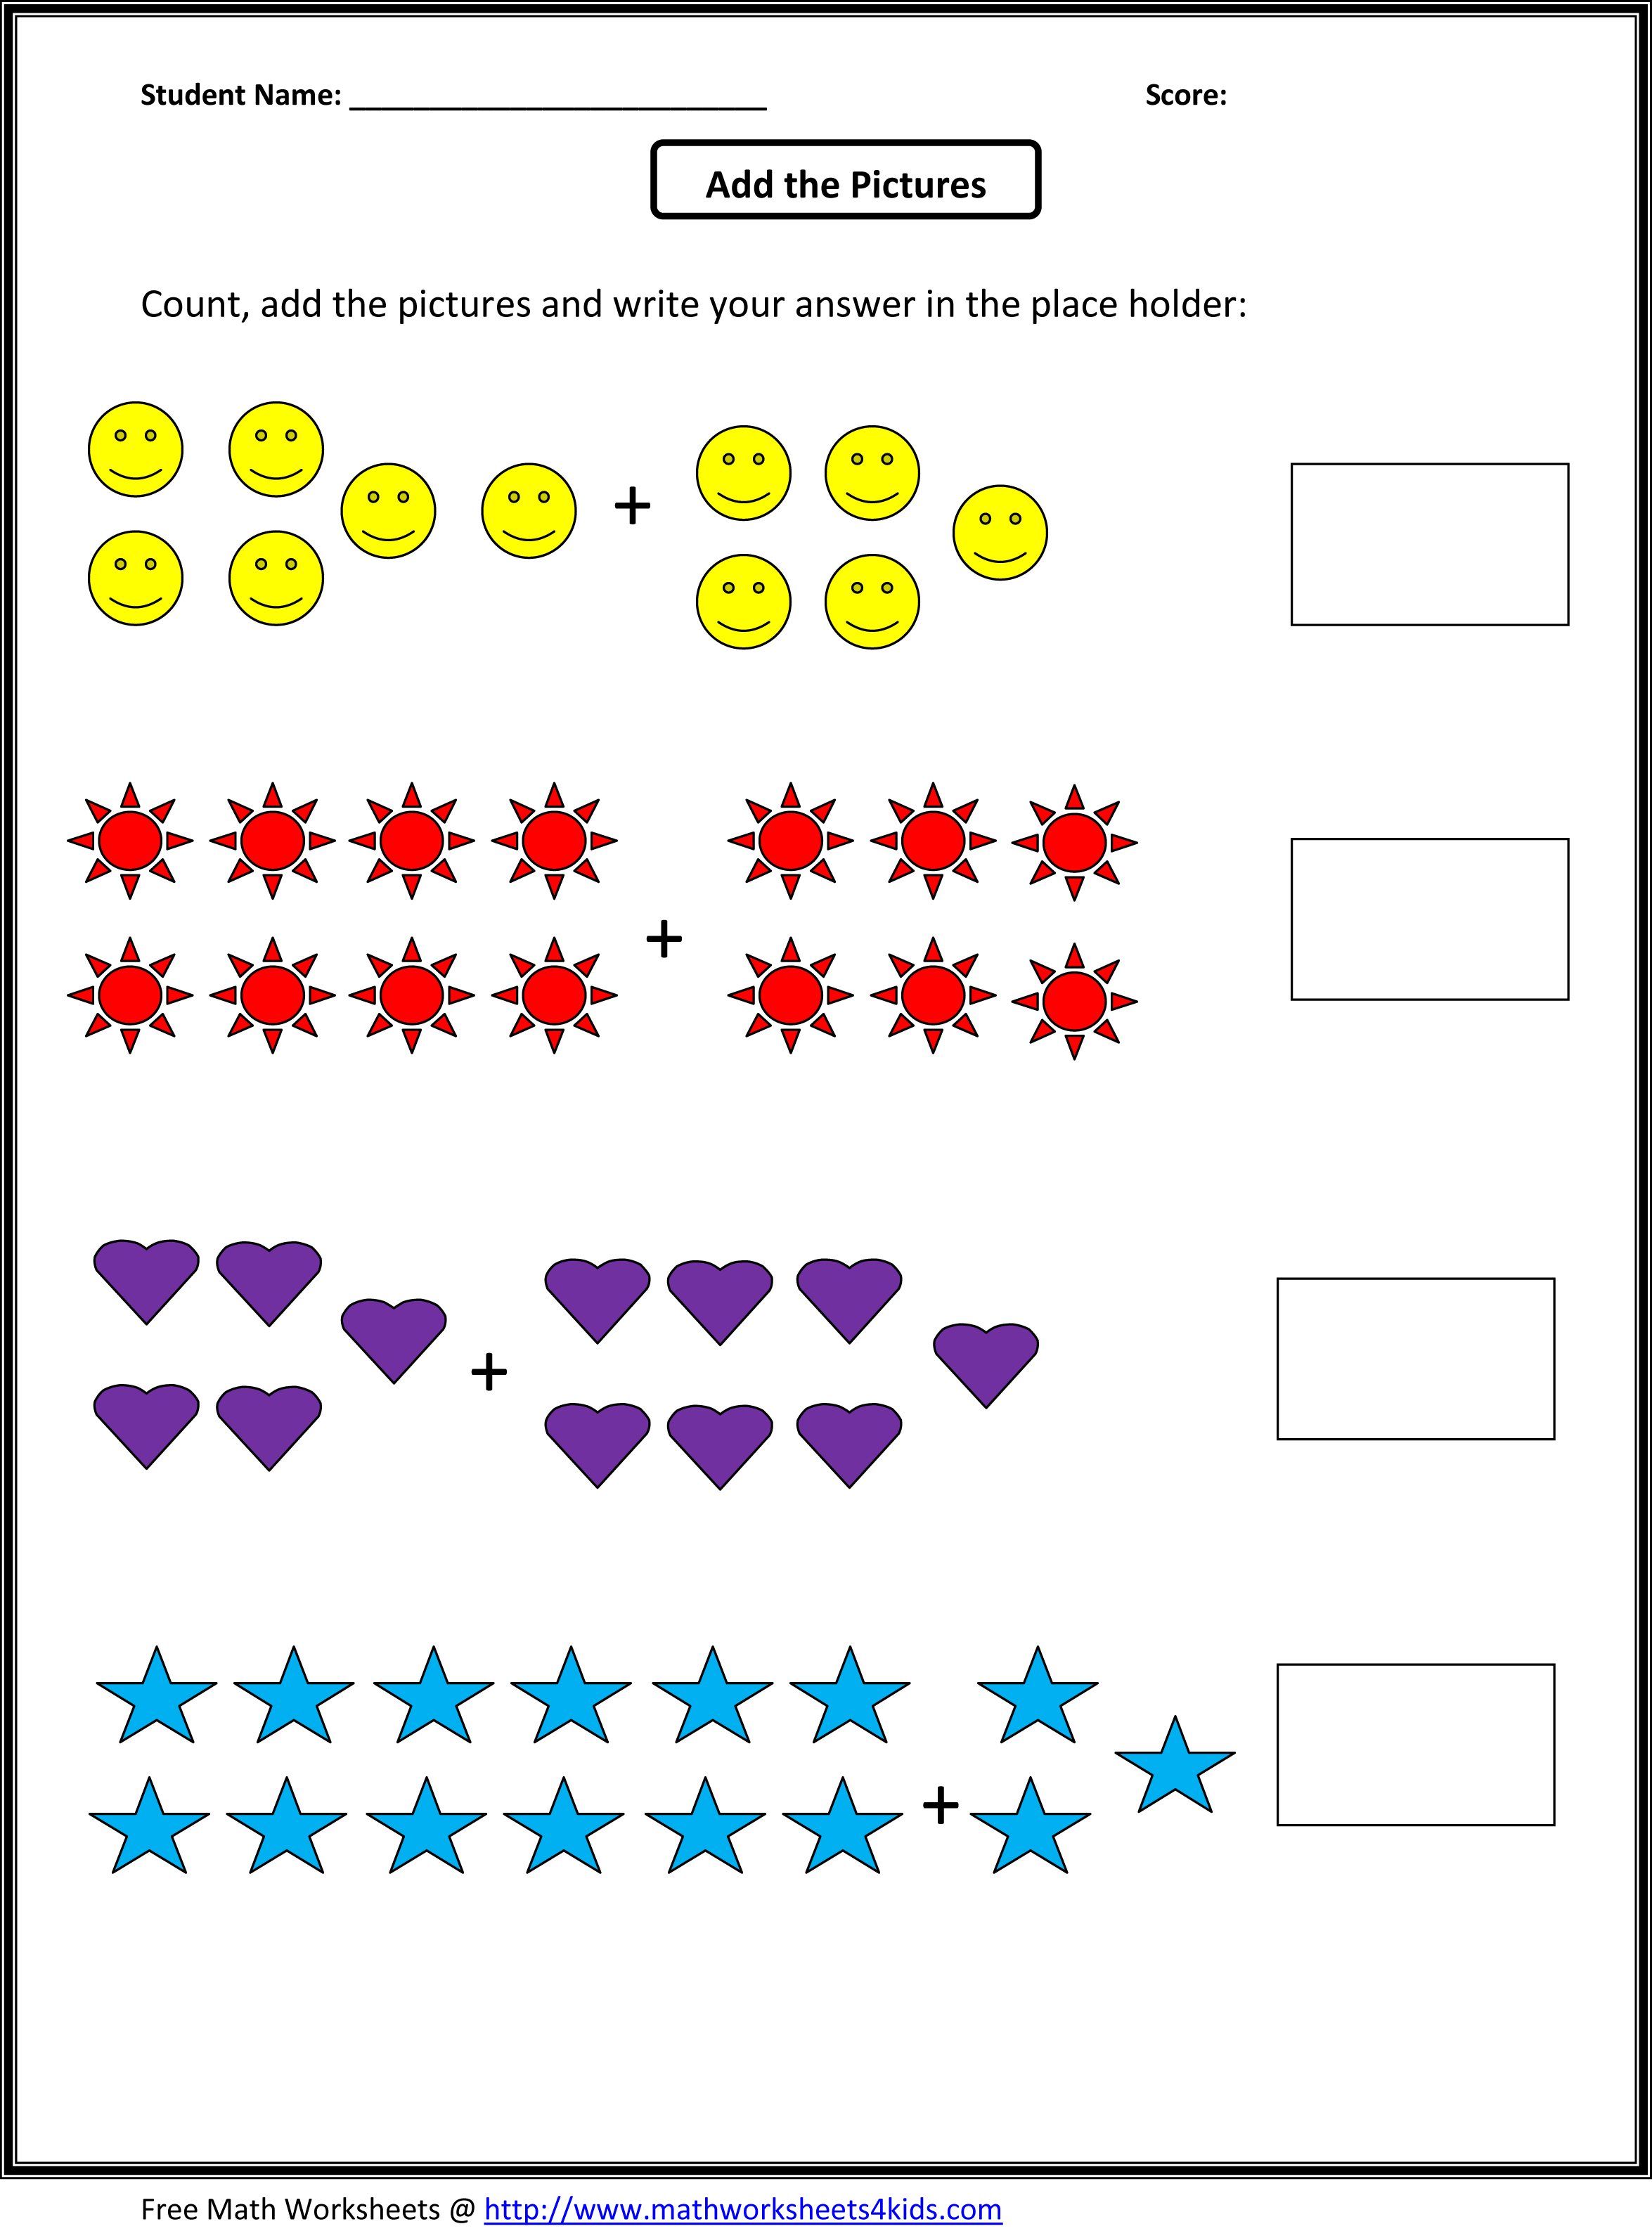 Weirdmailus  Sweet Grade  Maths Worksheet  Reocurent With Goodlooking Math Worksheets For St Grade Free  Reocurent With Attractive Generalizations Worksheets Also Persuasive Worksheets In Addition French Grammar Worksheets And Excel Worksheet Vs Workbook As Well As Possessive Pronouns Spanish Worksheet Additionally Independent Clauses Worksheet From Reocurentcom With Weirdmailus  Goodlooking Grade  Maths Worksheet  Reocurent With Attractive Math Worksheets For St Grade Free  Reocurent And Sweet Generalizations Worksheets Also Persuasive Worksheets In Addition French Grammar Worksheets From Reocurentcom